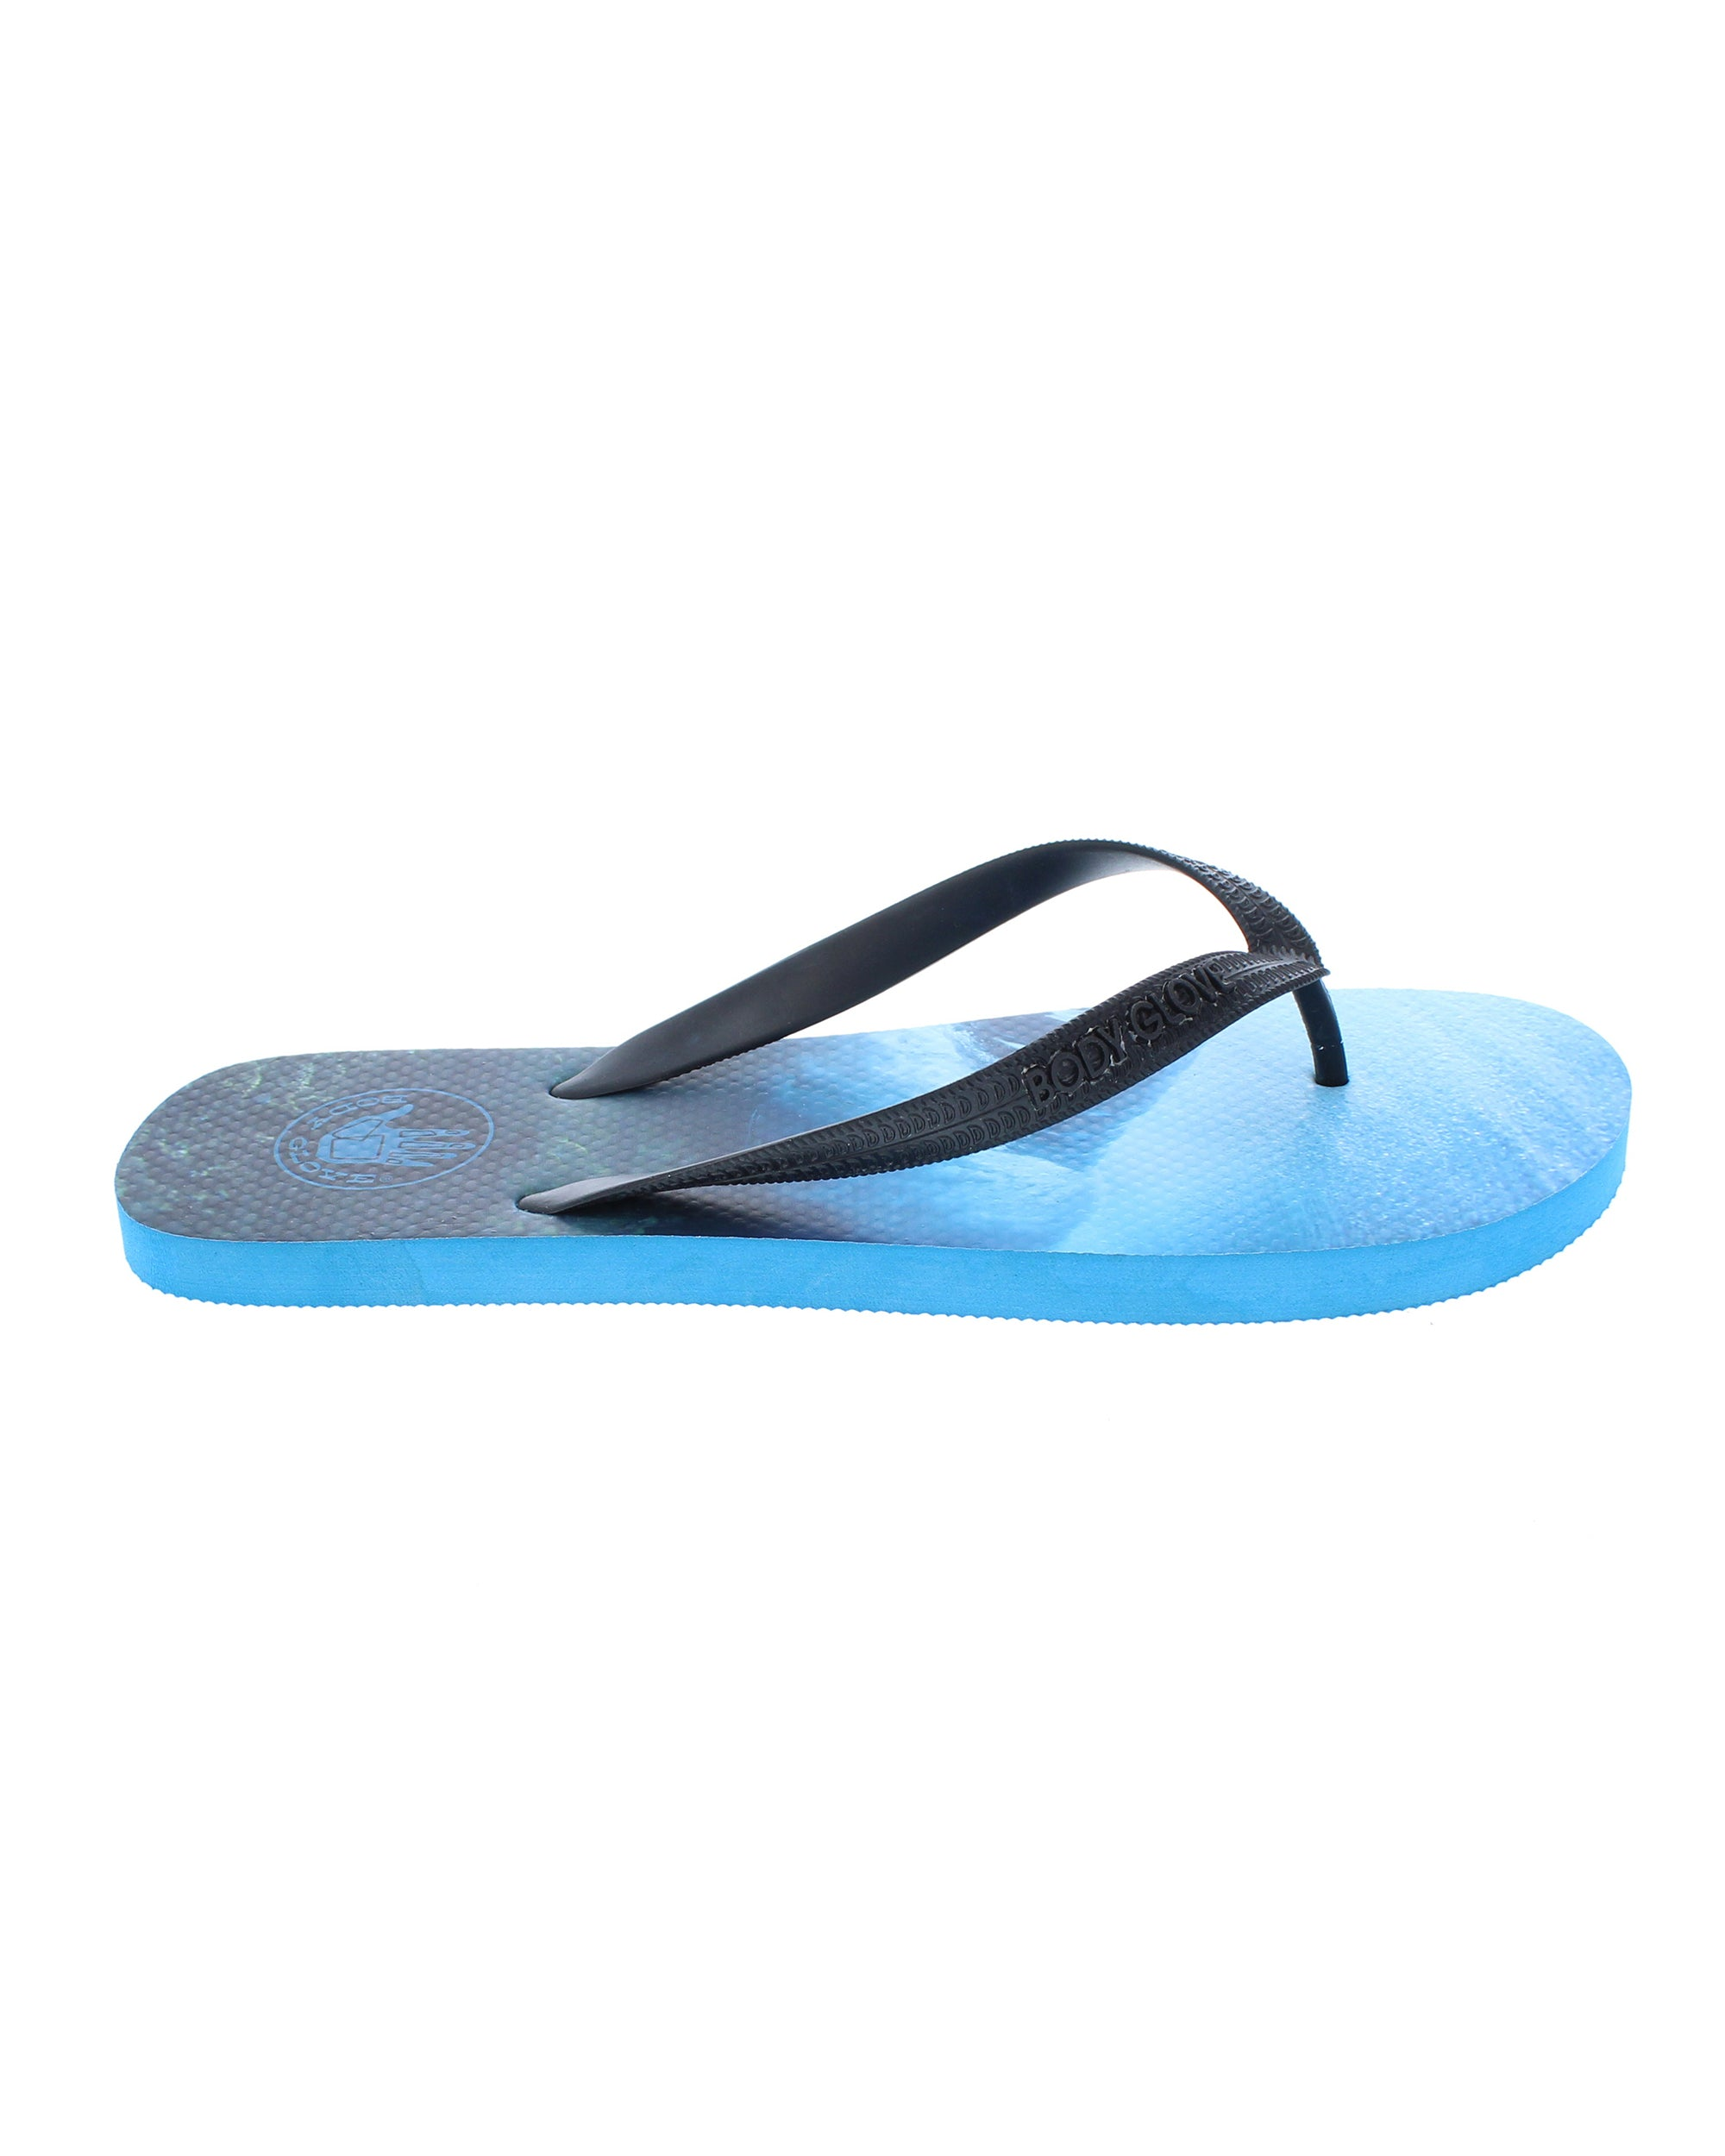 Men's Old Skool Flip Flop Sandals - Tubed